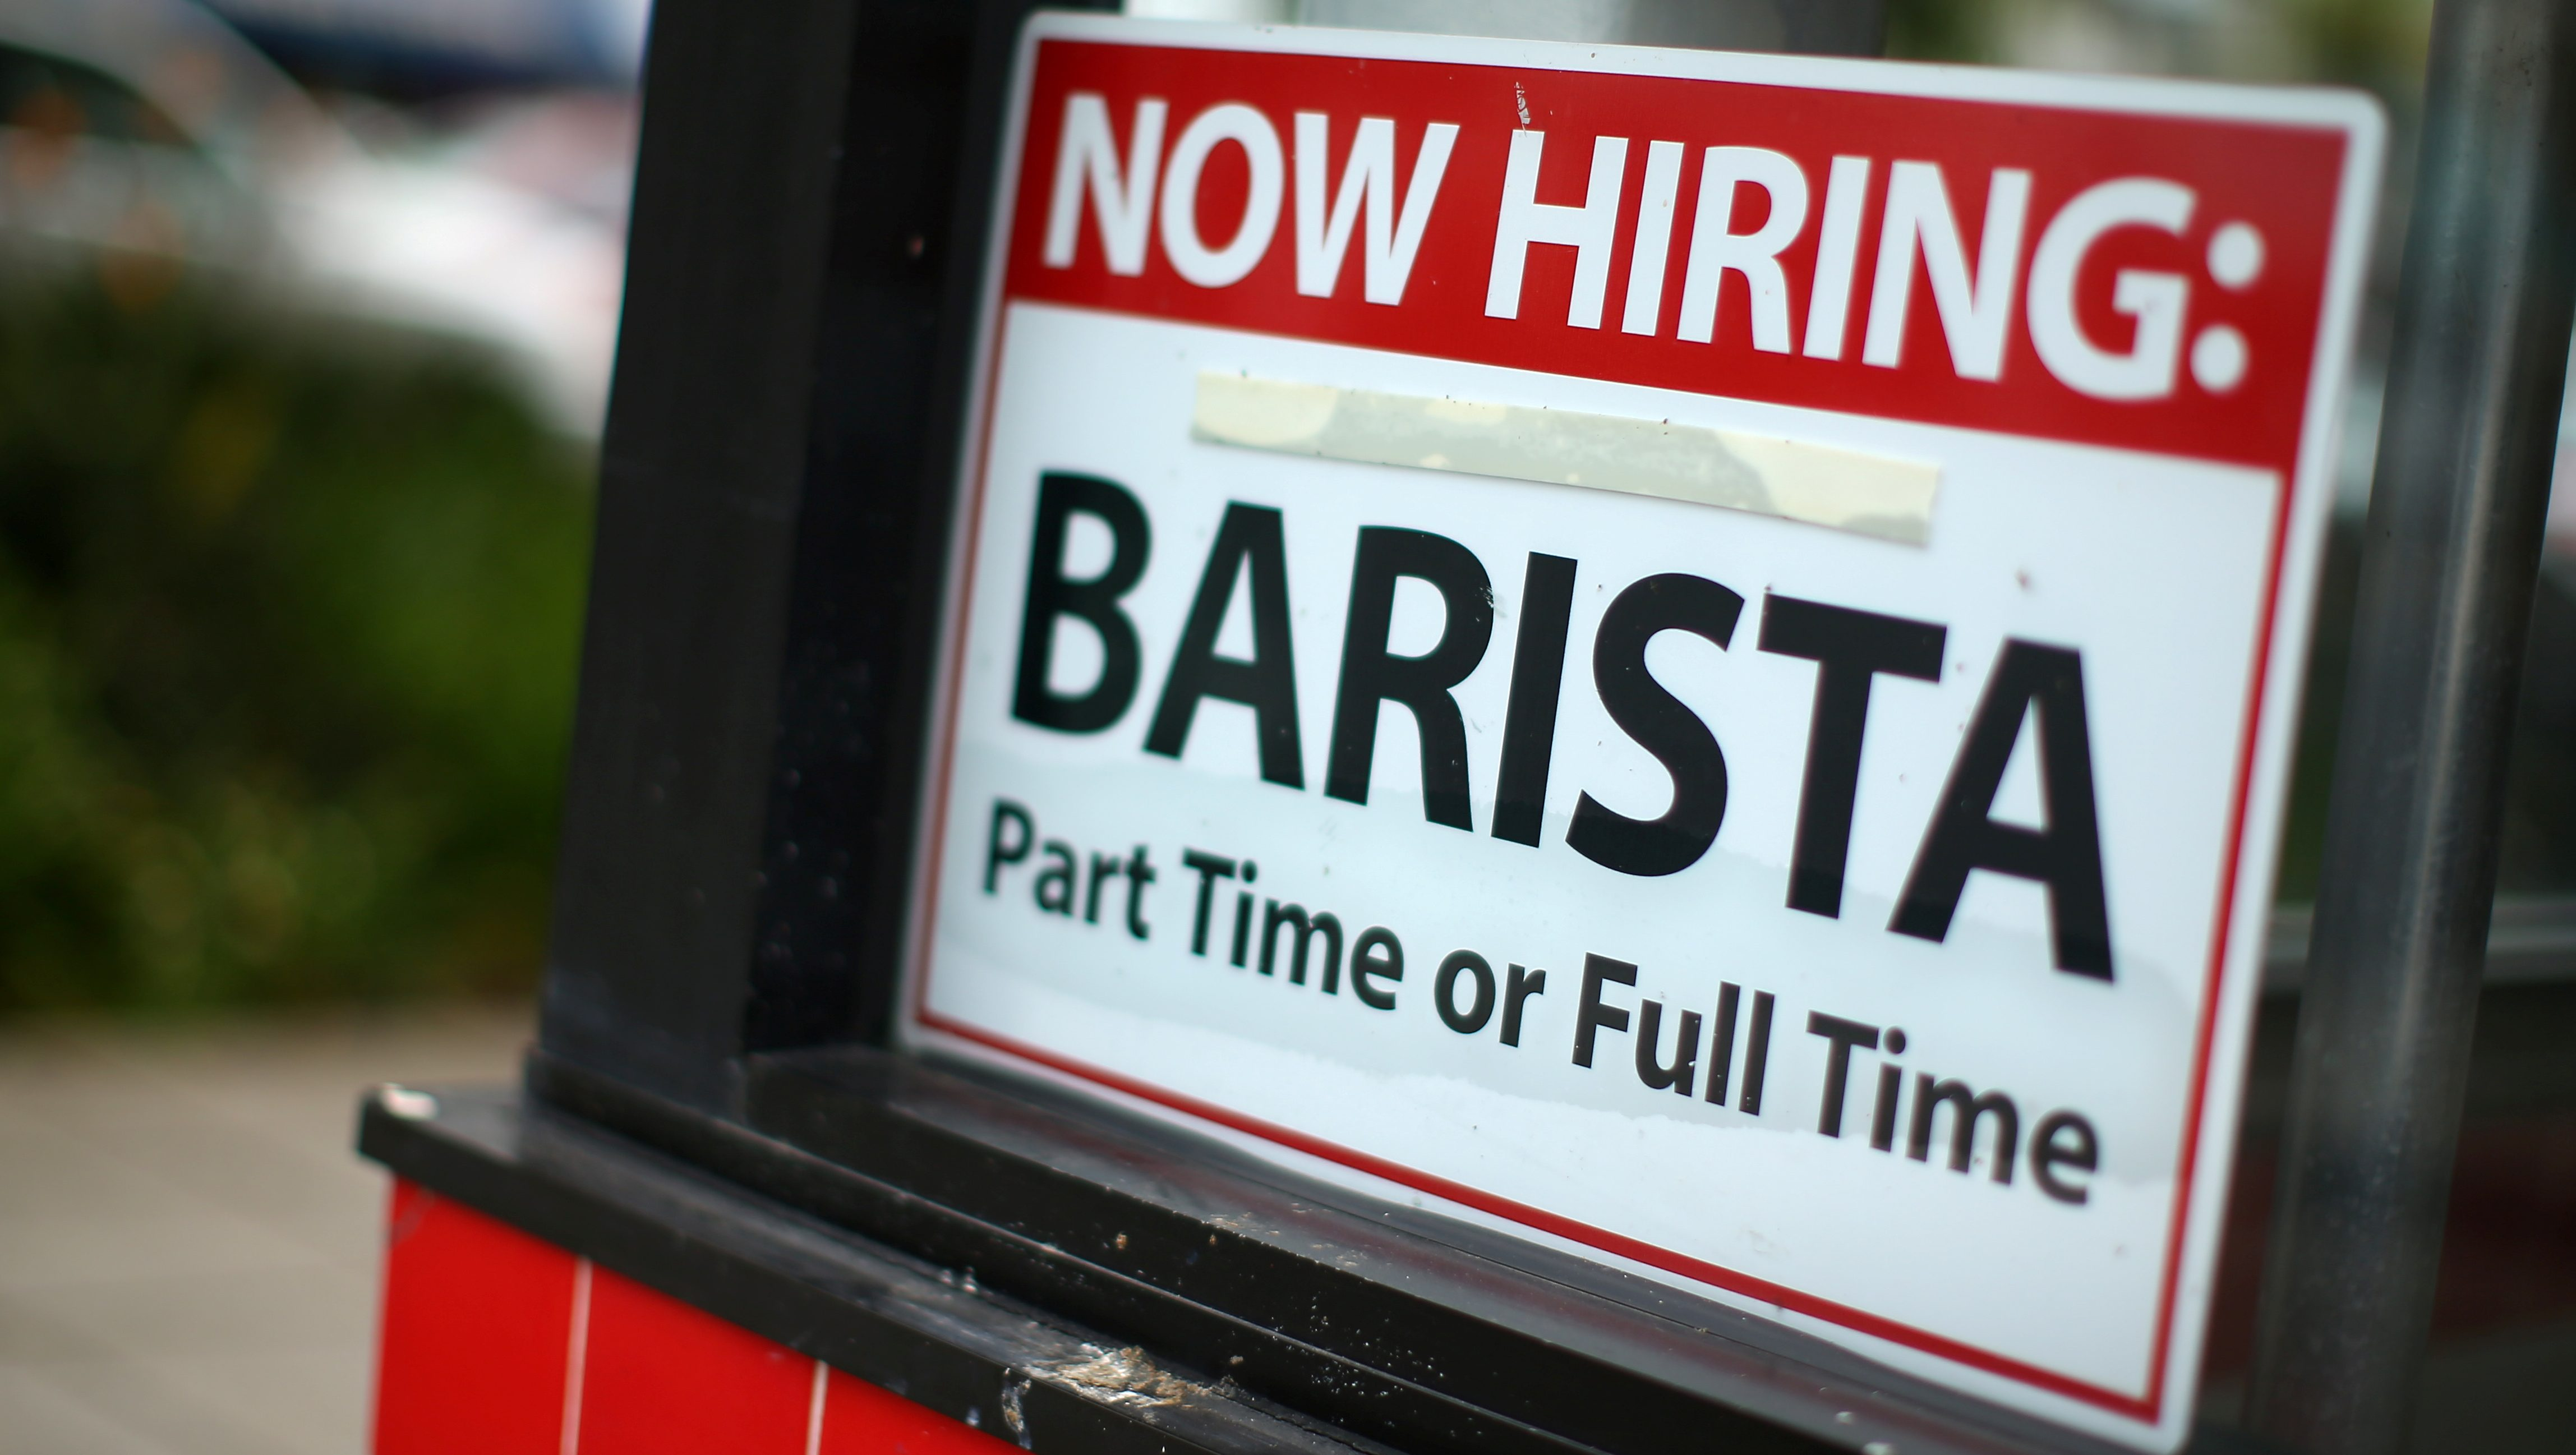 Hiring sign for a part-time or full-time barista on a restaurant window.